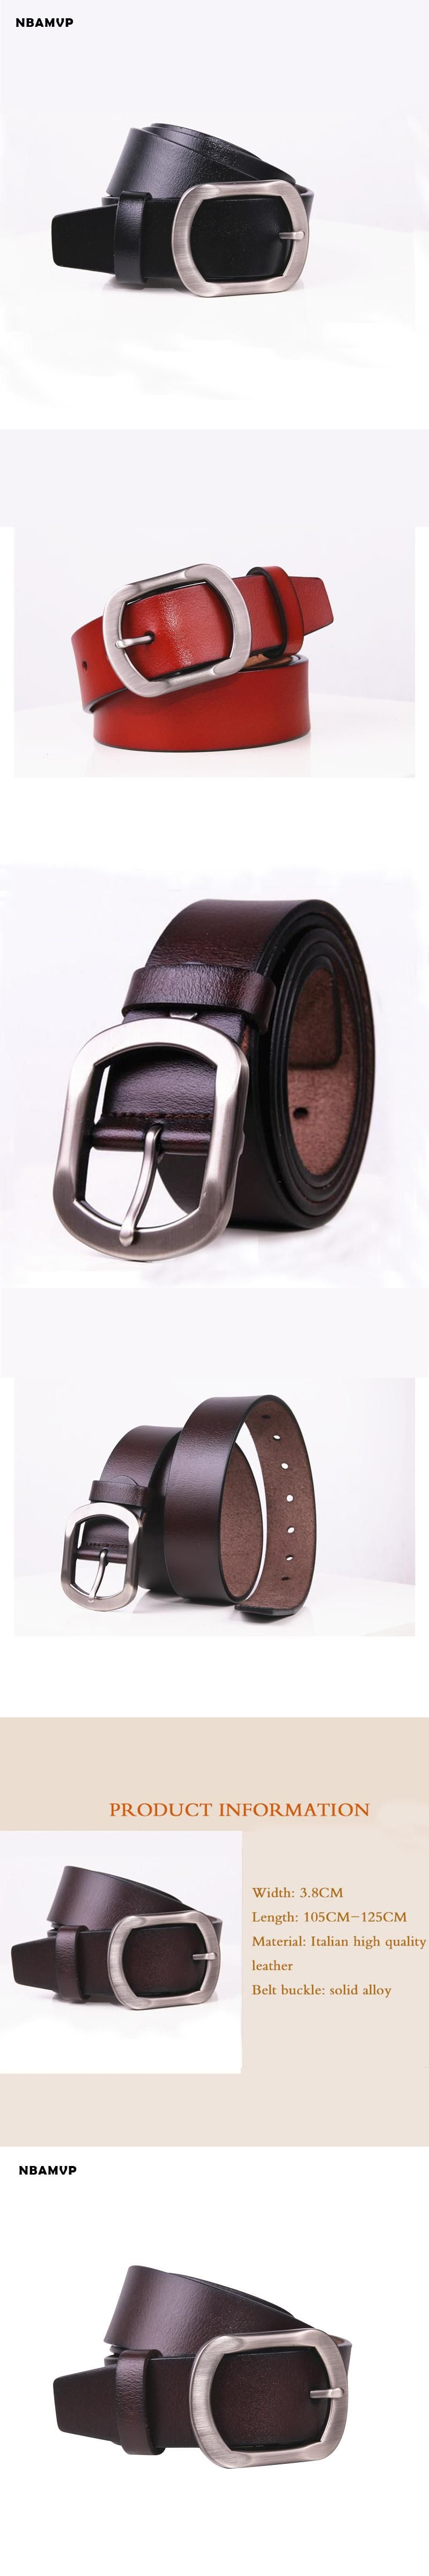 2017 mens belt Vintage style pin buckle cow genuine leather belts for men  130cm high quality mens belt ceinture homme YS107 be3137aec7f